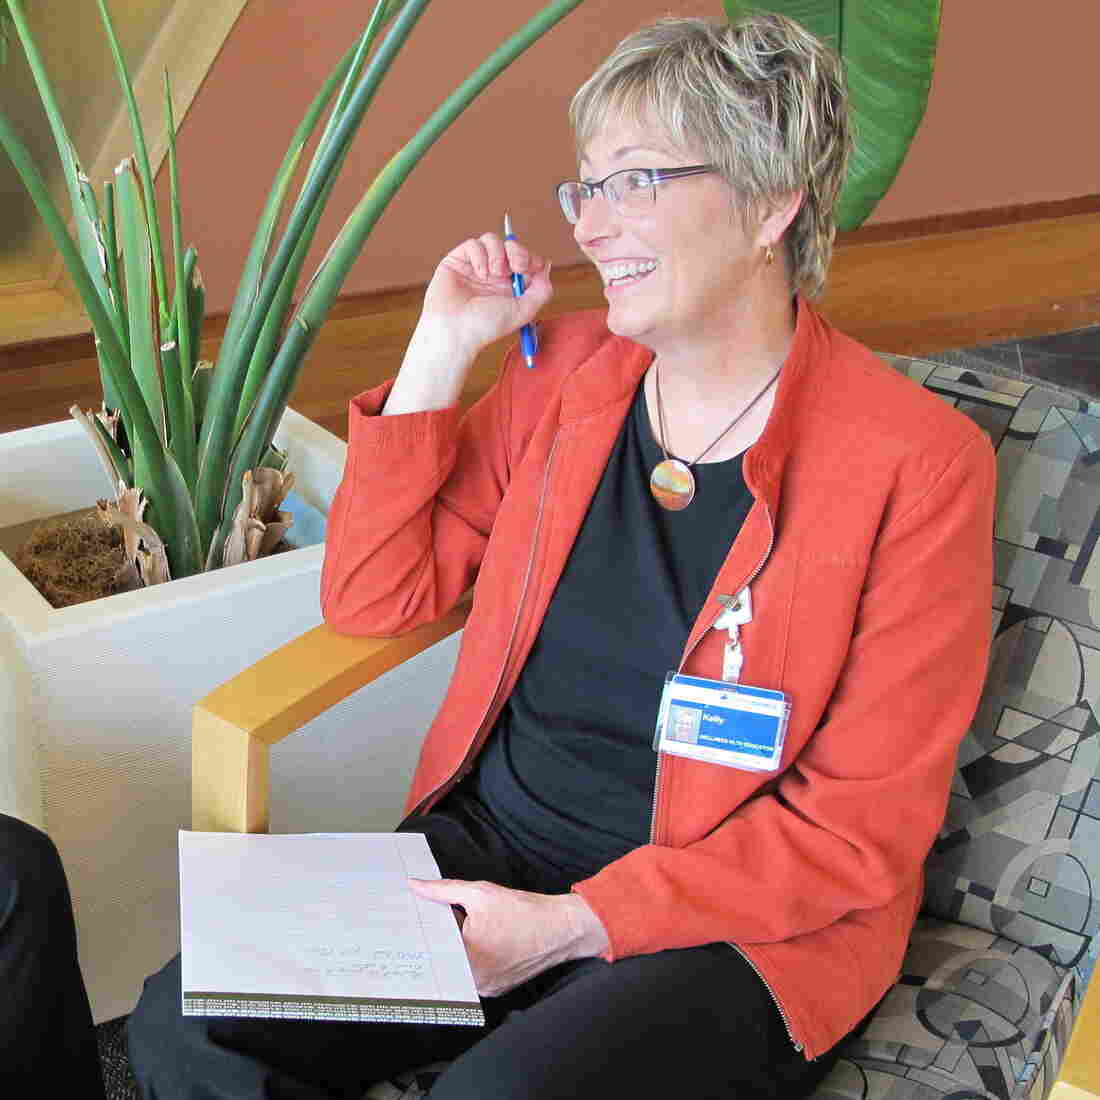 Shannon Orley, left, meets with her health coach, Kelly Heithold, right, at Providence Alaska Medical Center.